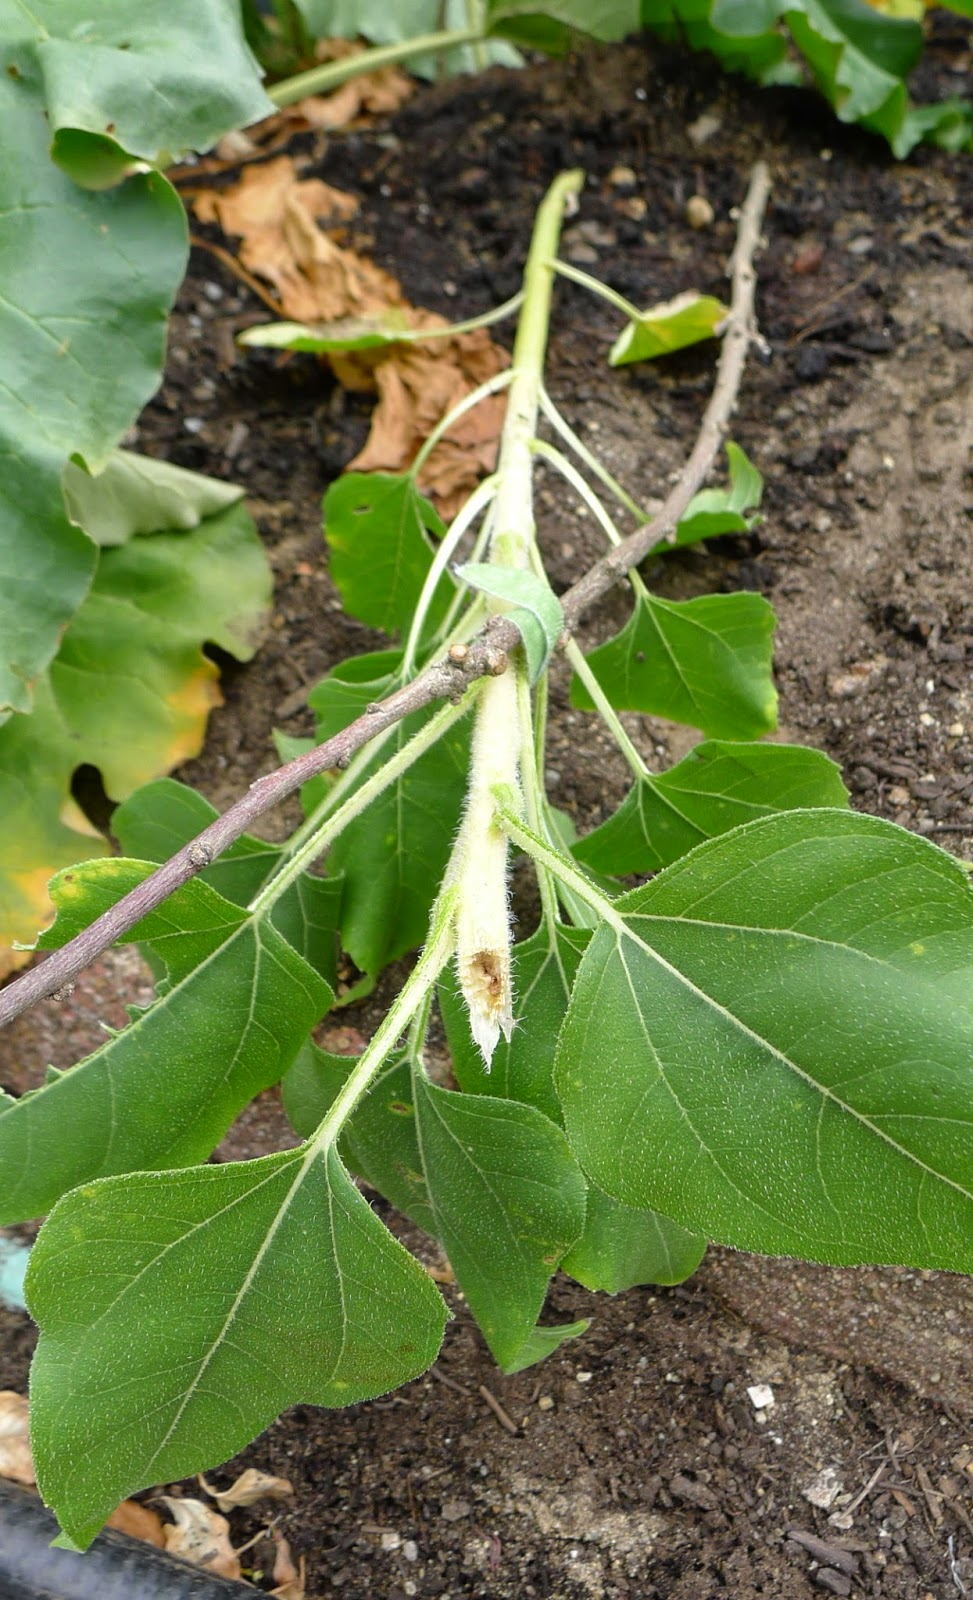 Damage to sunflower caused by squirrels